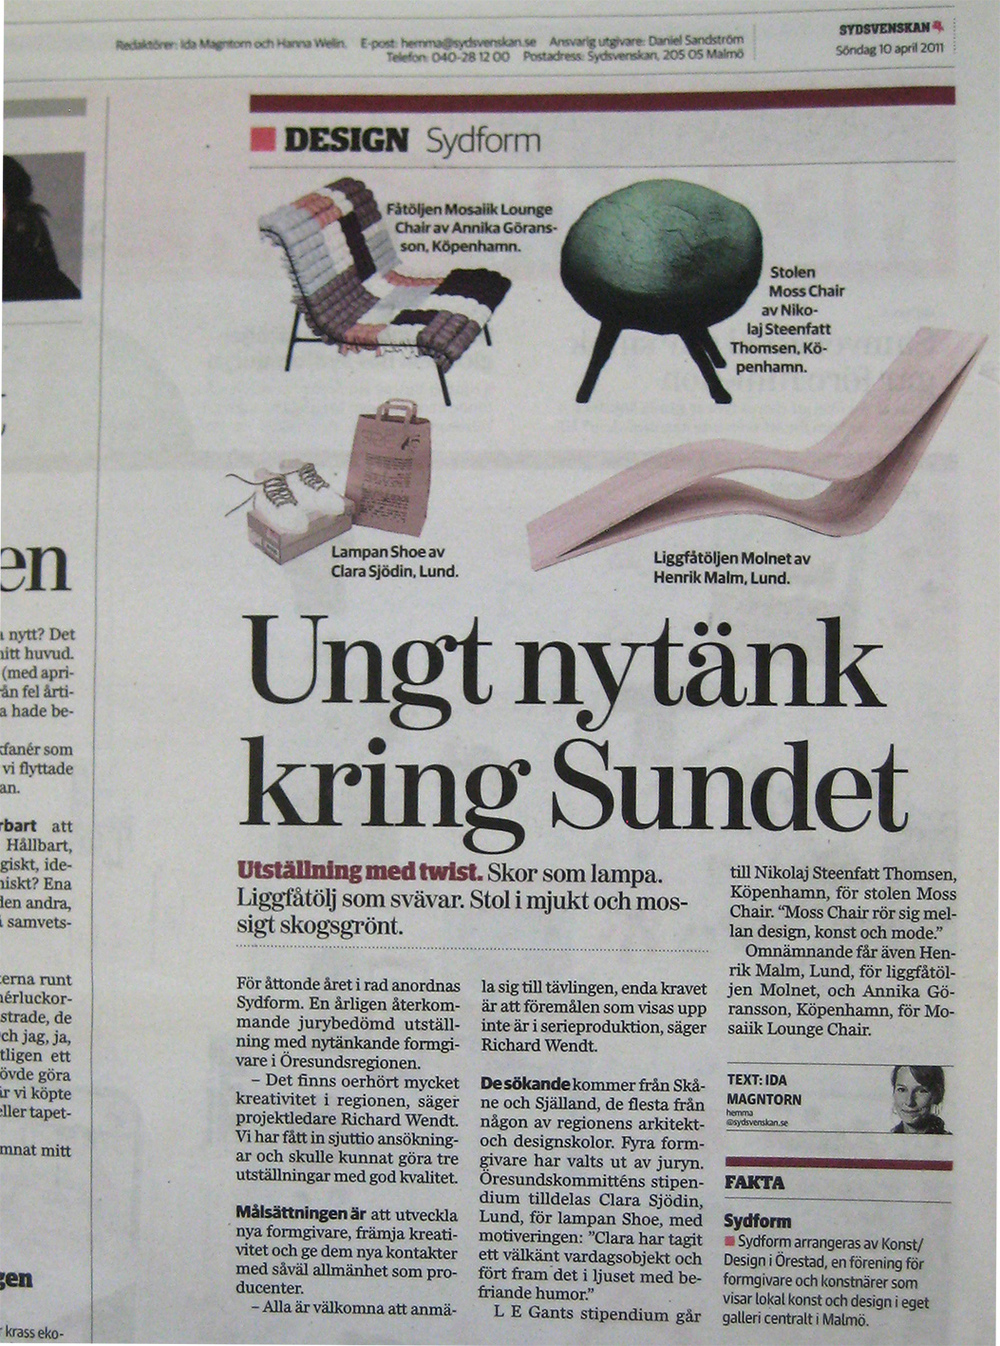 Article in Swedish newspaper Sydsvenskan.